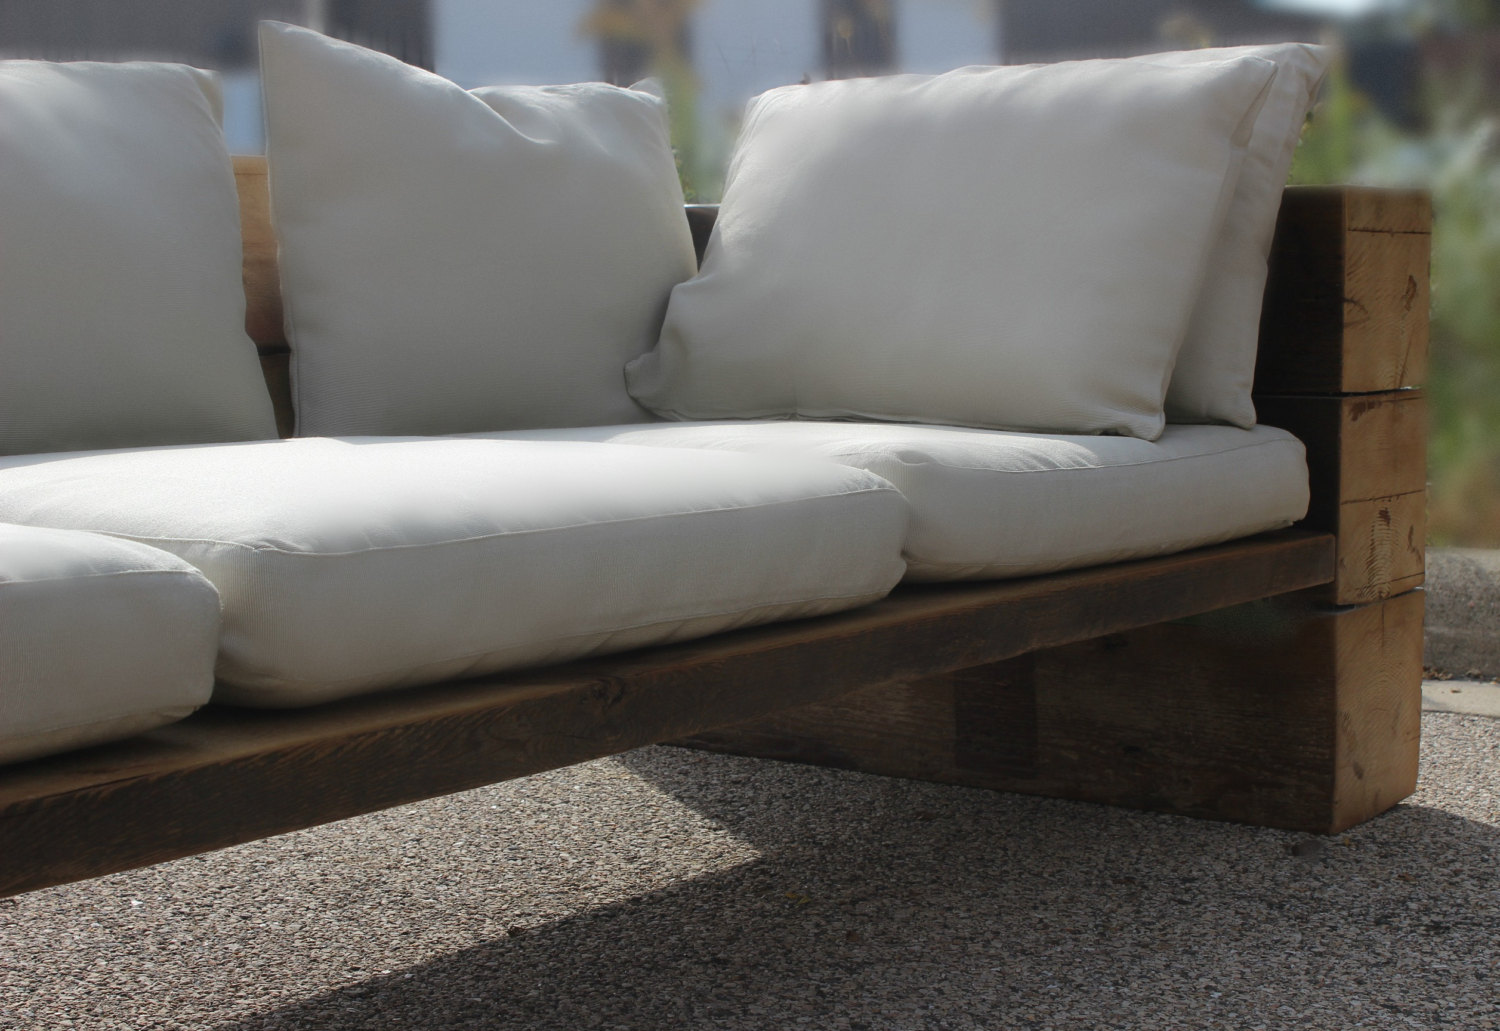 Beau Reclaimed Wood Sofa, Couch, Sectional, Reclaimed Wood, Indoor/Outdoor, Free